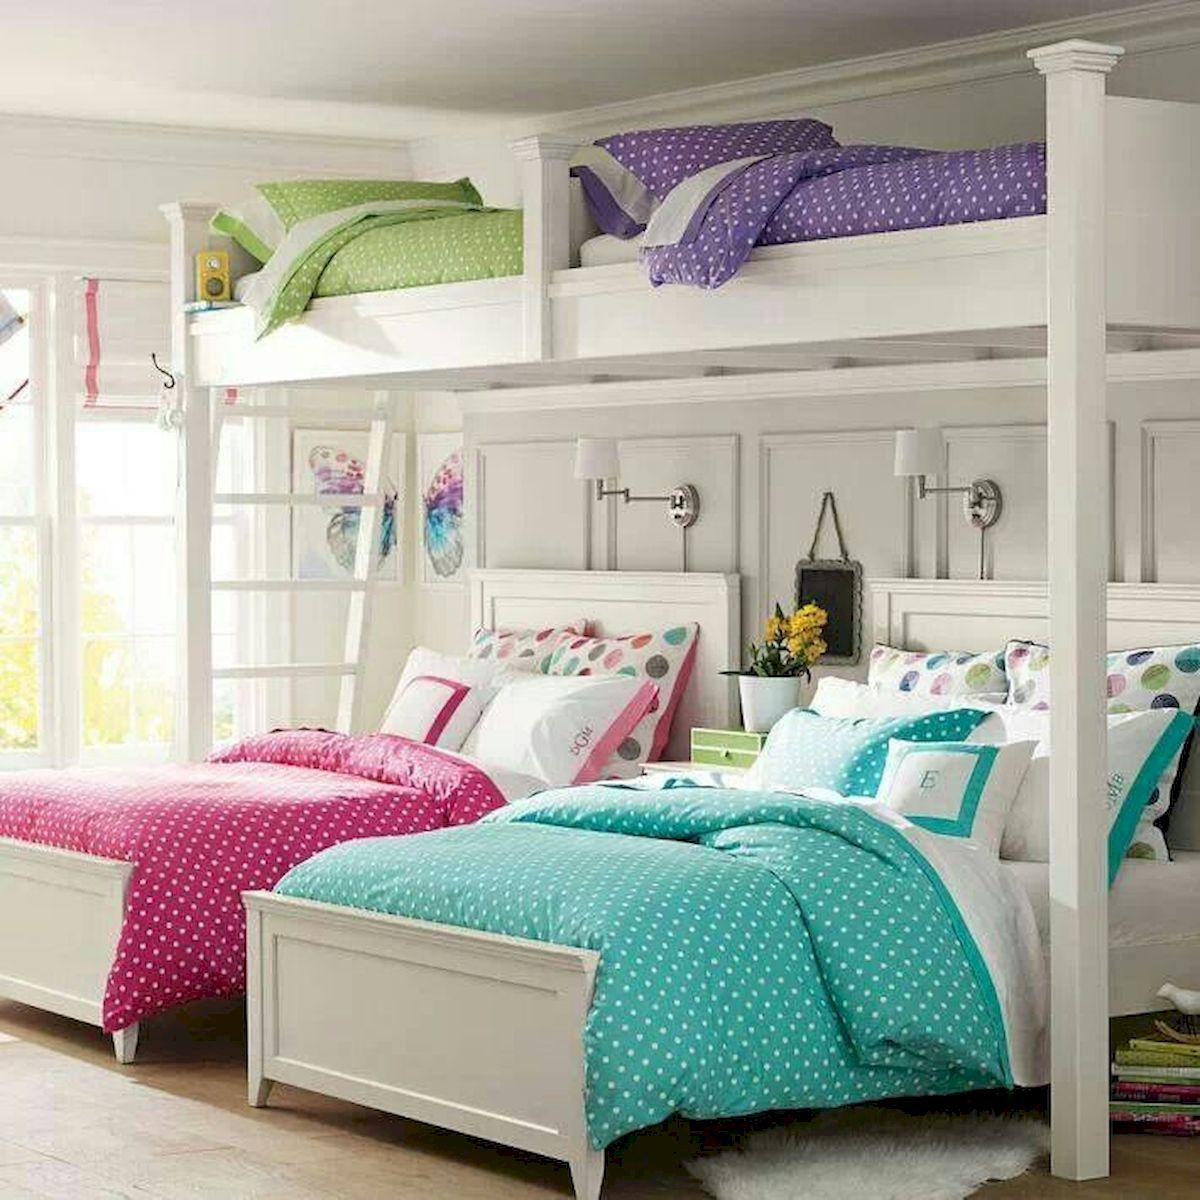 Bedroom For Little Girls Ideas Jihanshanum Bunk Bed Rooms Girls Loft Bed Girl Room